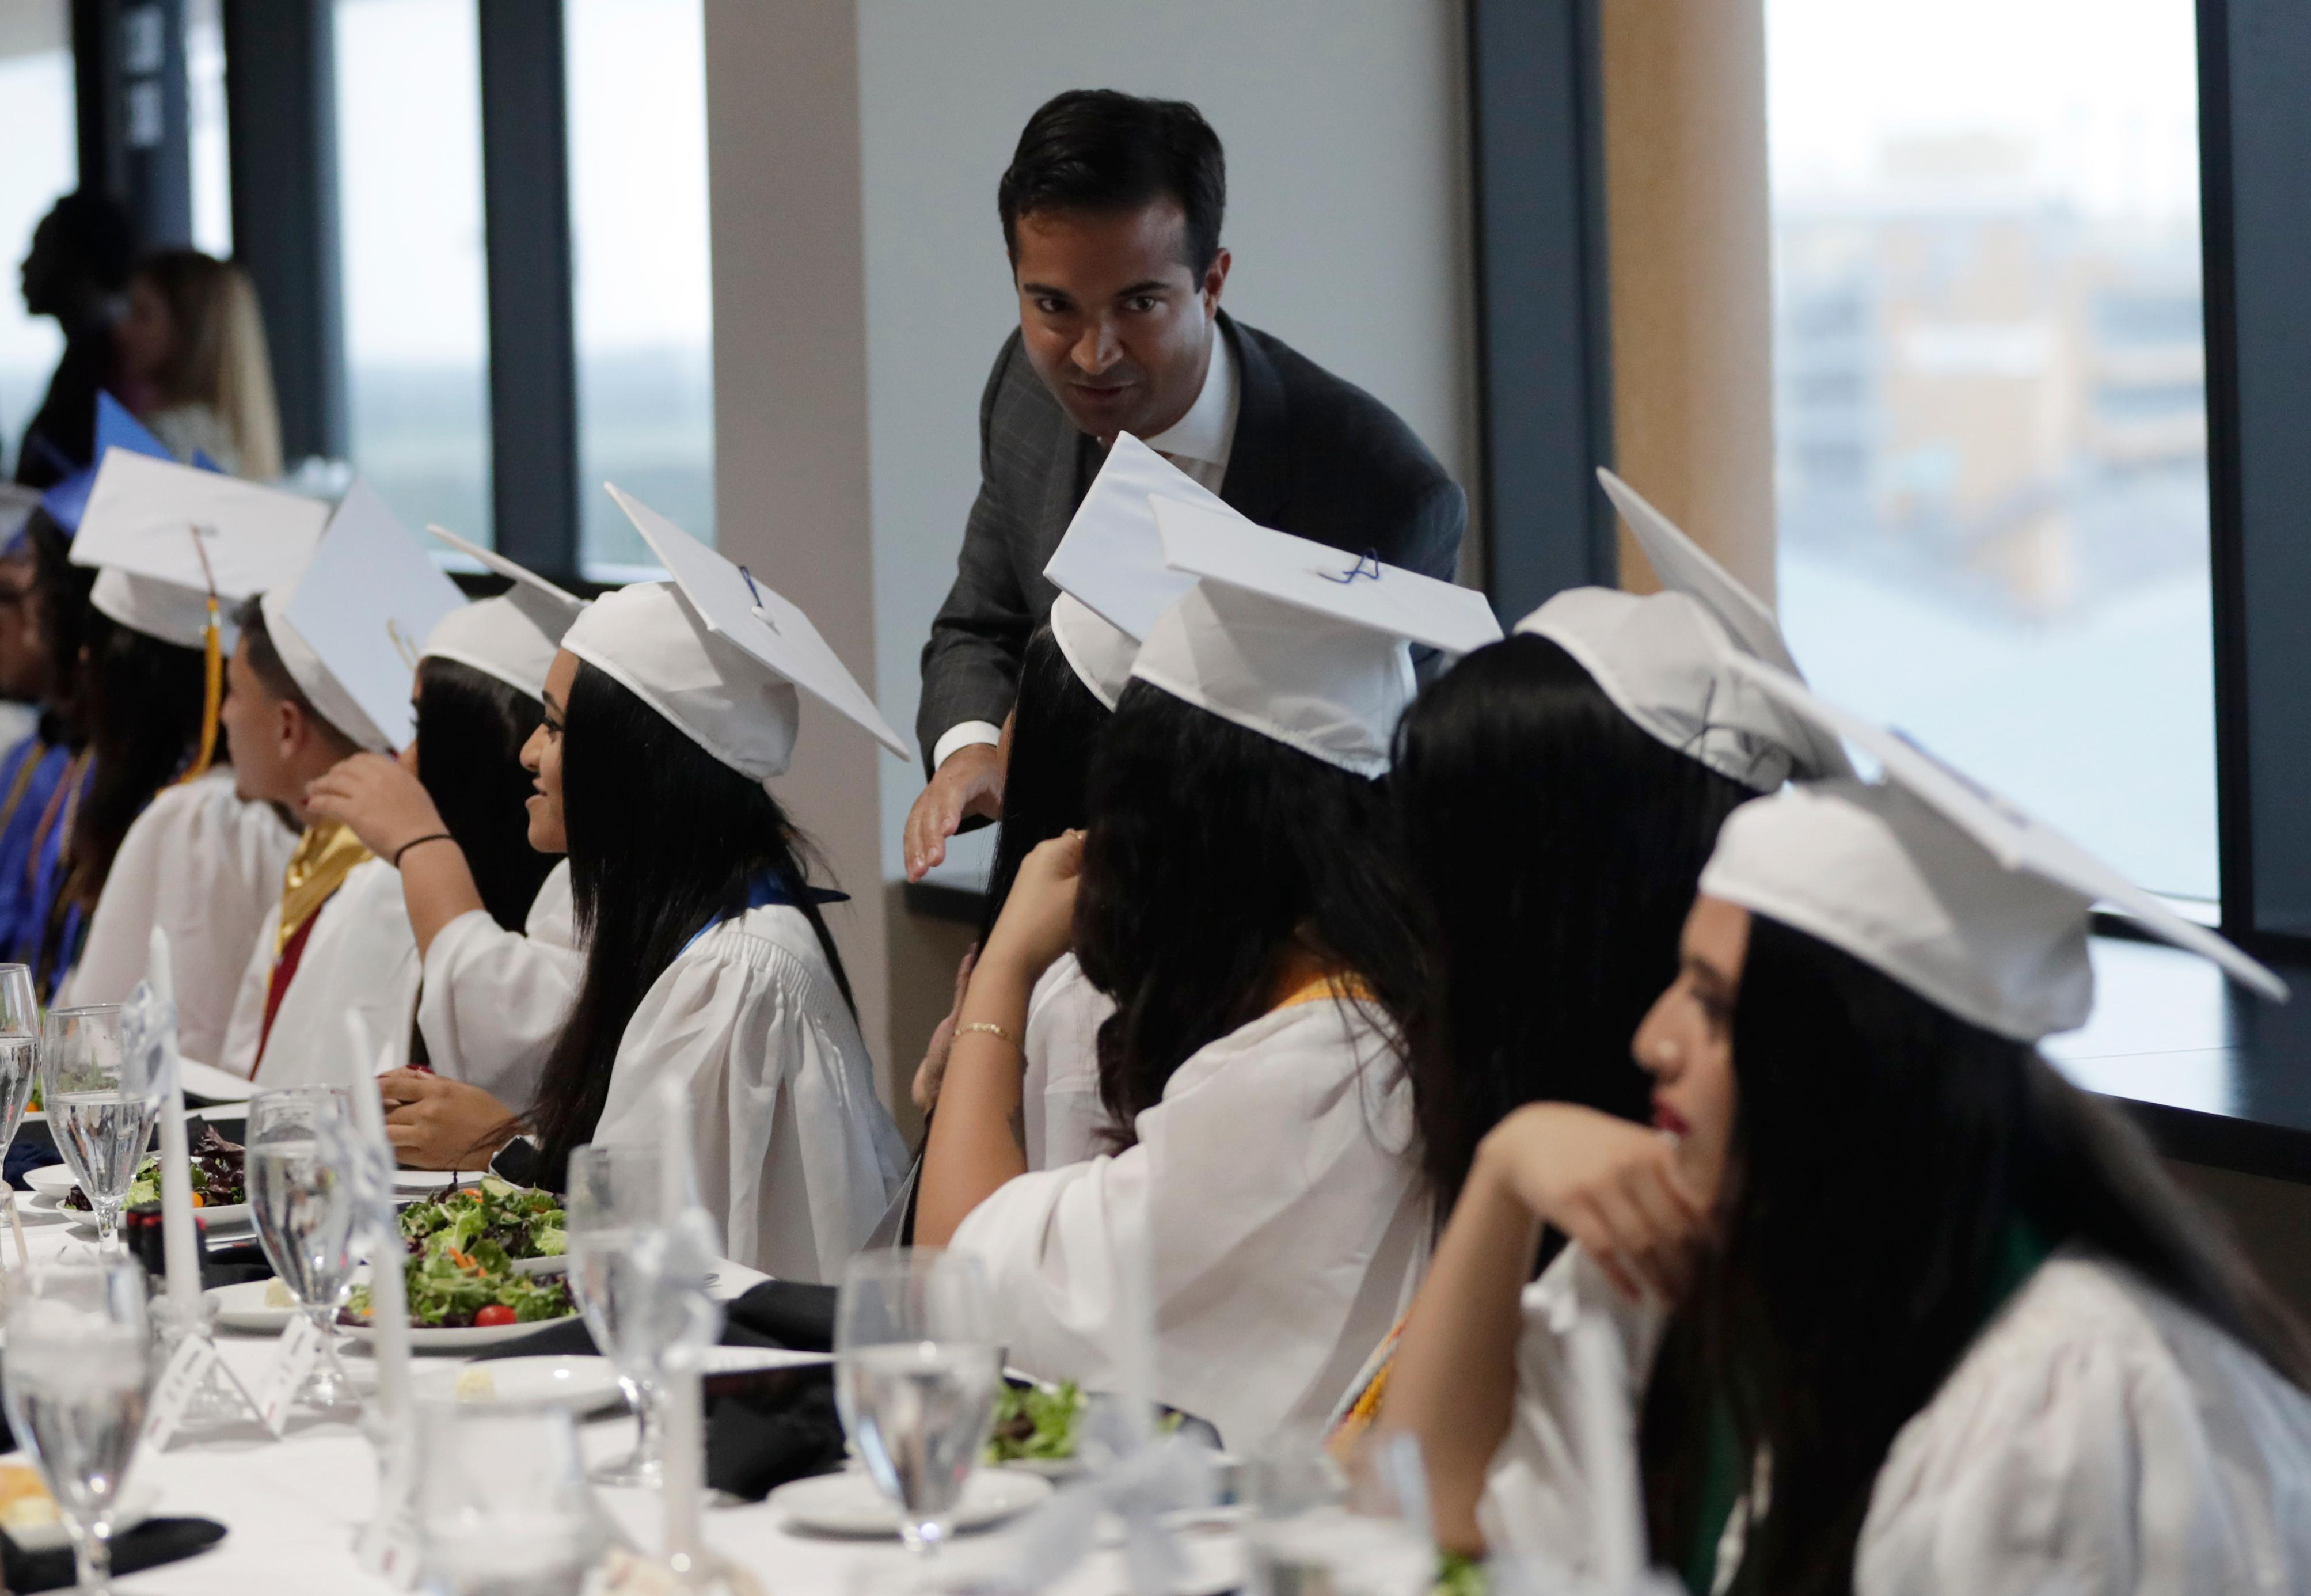 In this Tuesday, May 29, 2018 photo, Rep. Carlos Curbelo, R-Fla., greets graduates while attending the 34th Annual Farmworker Student Recognition Ceremony in Homestead, Fla. (AP Photo/Lynne Sladky)